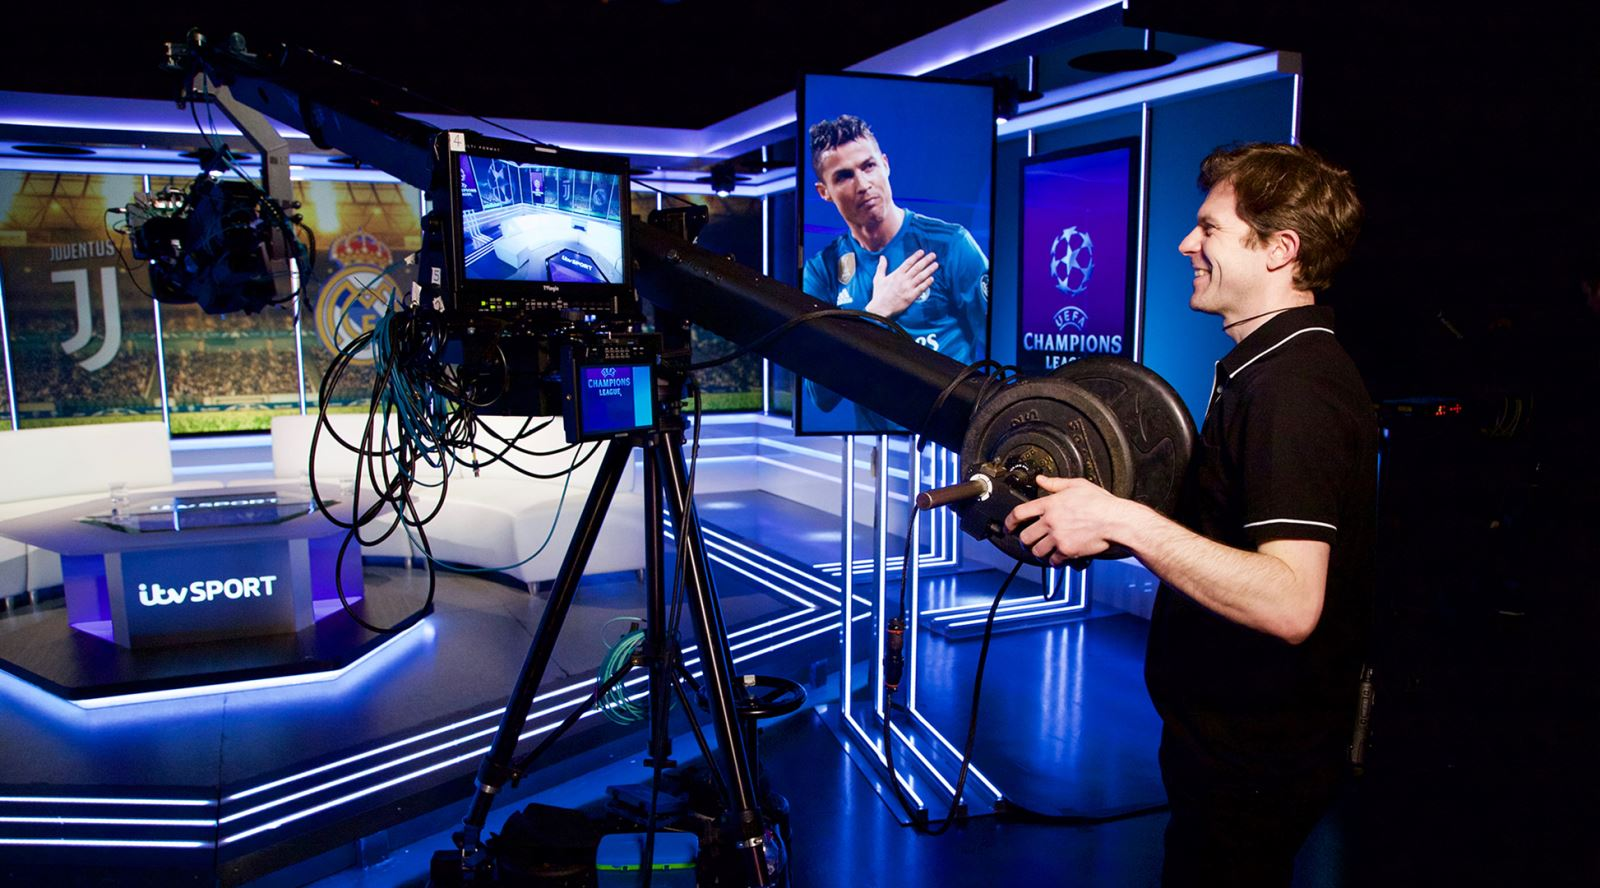 Camera supervisor Dominic Roberts, who recently rejoined the GTC, jib operating on ITV Sport's Championship League Show